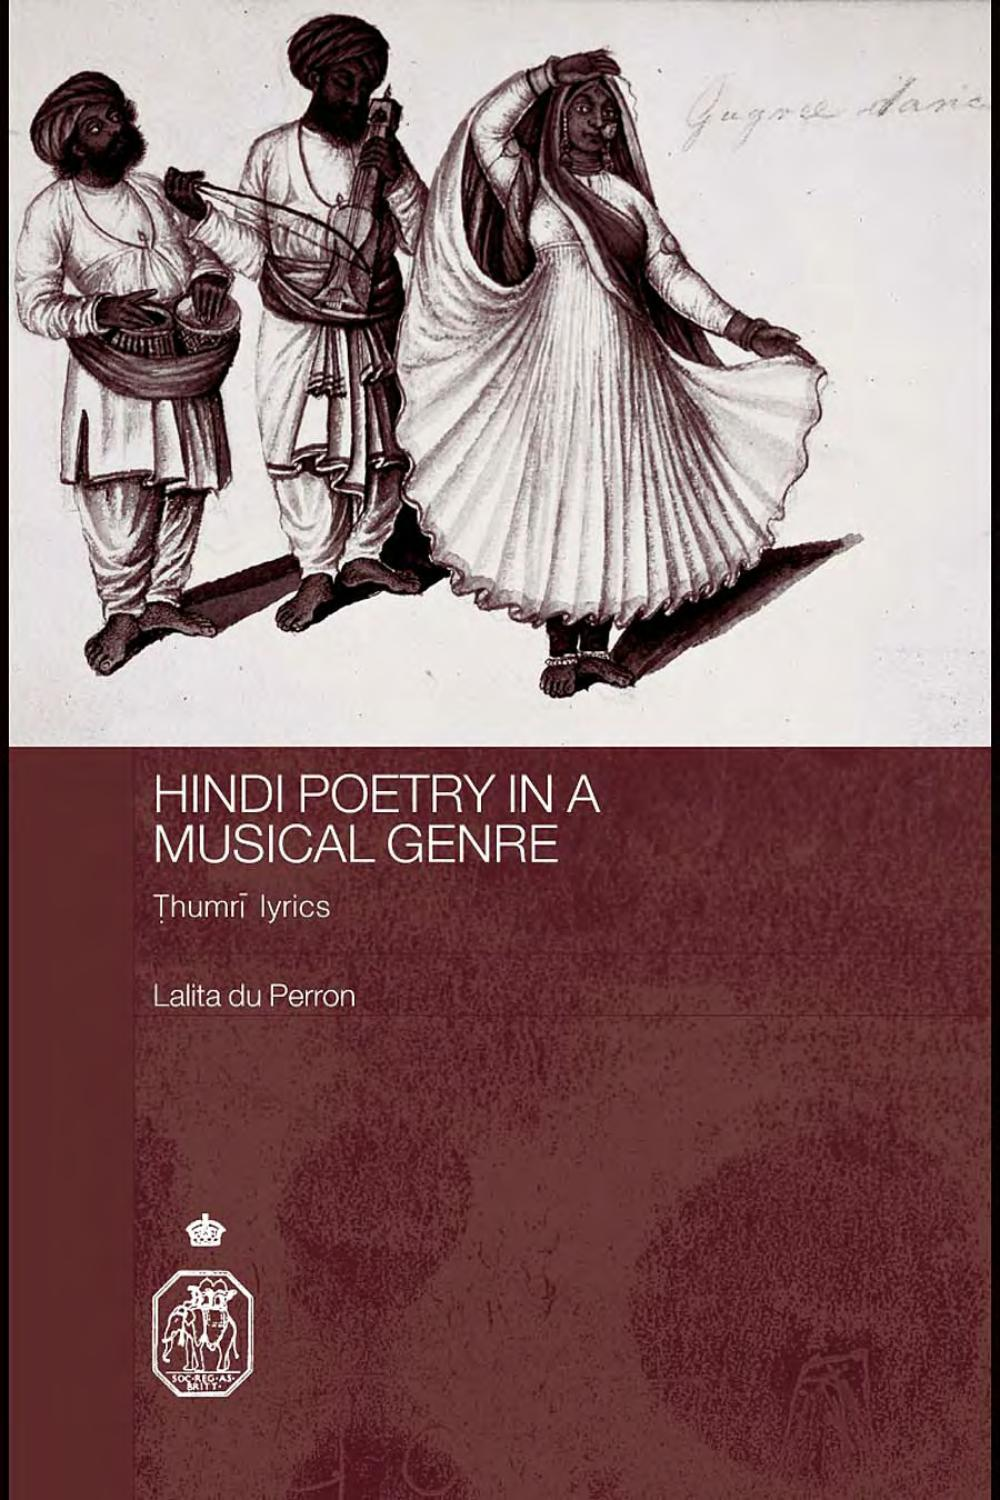 Hindi Poetry in a musical Genre - Thumri lyrics by Rajiv